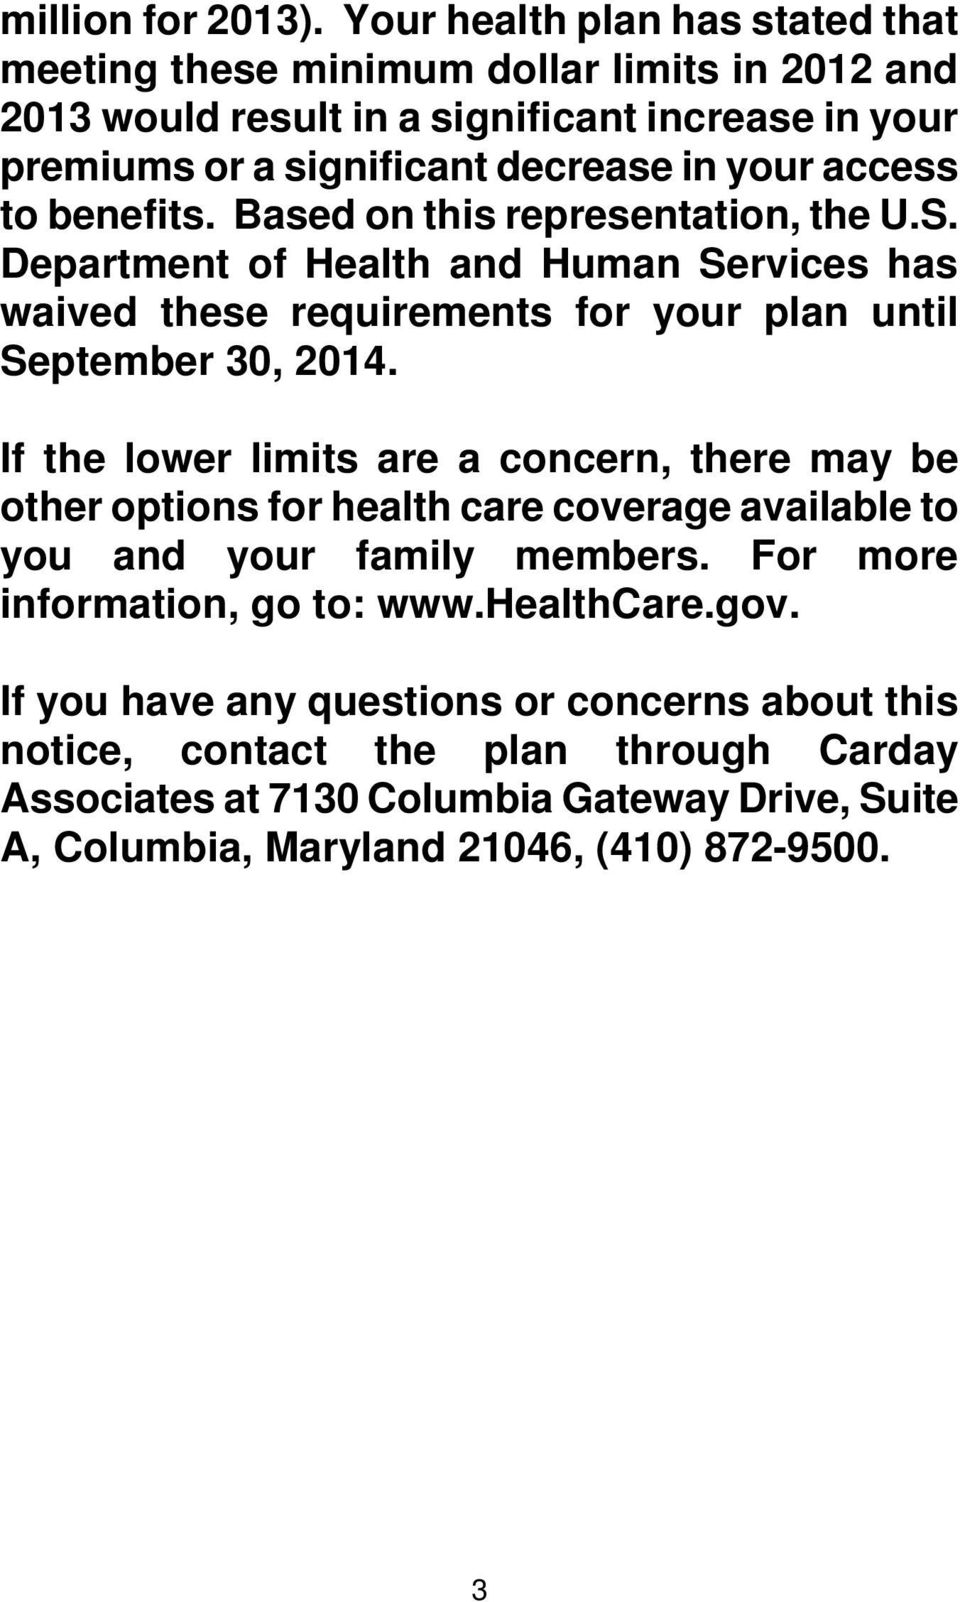 access to benefits. Based on this representation, the U.S. Department of Health and Human Services has waived these requirements for your plan until September 30, 2014.